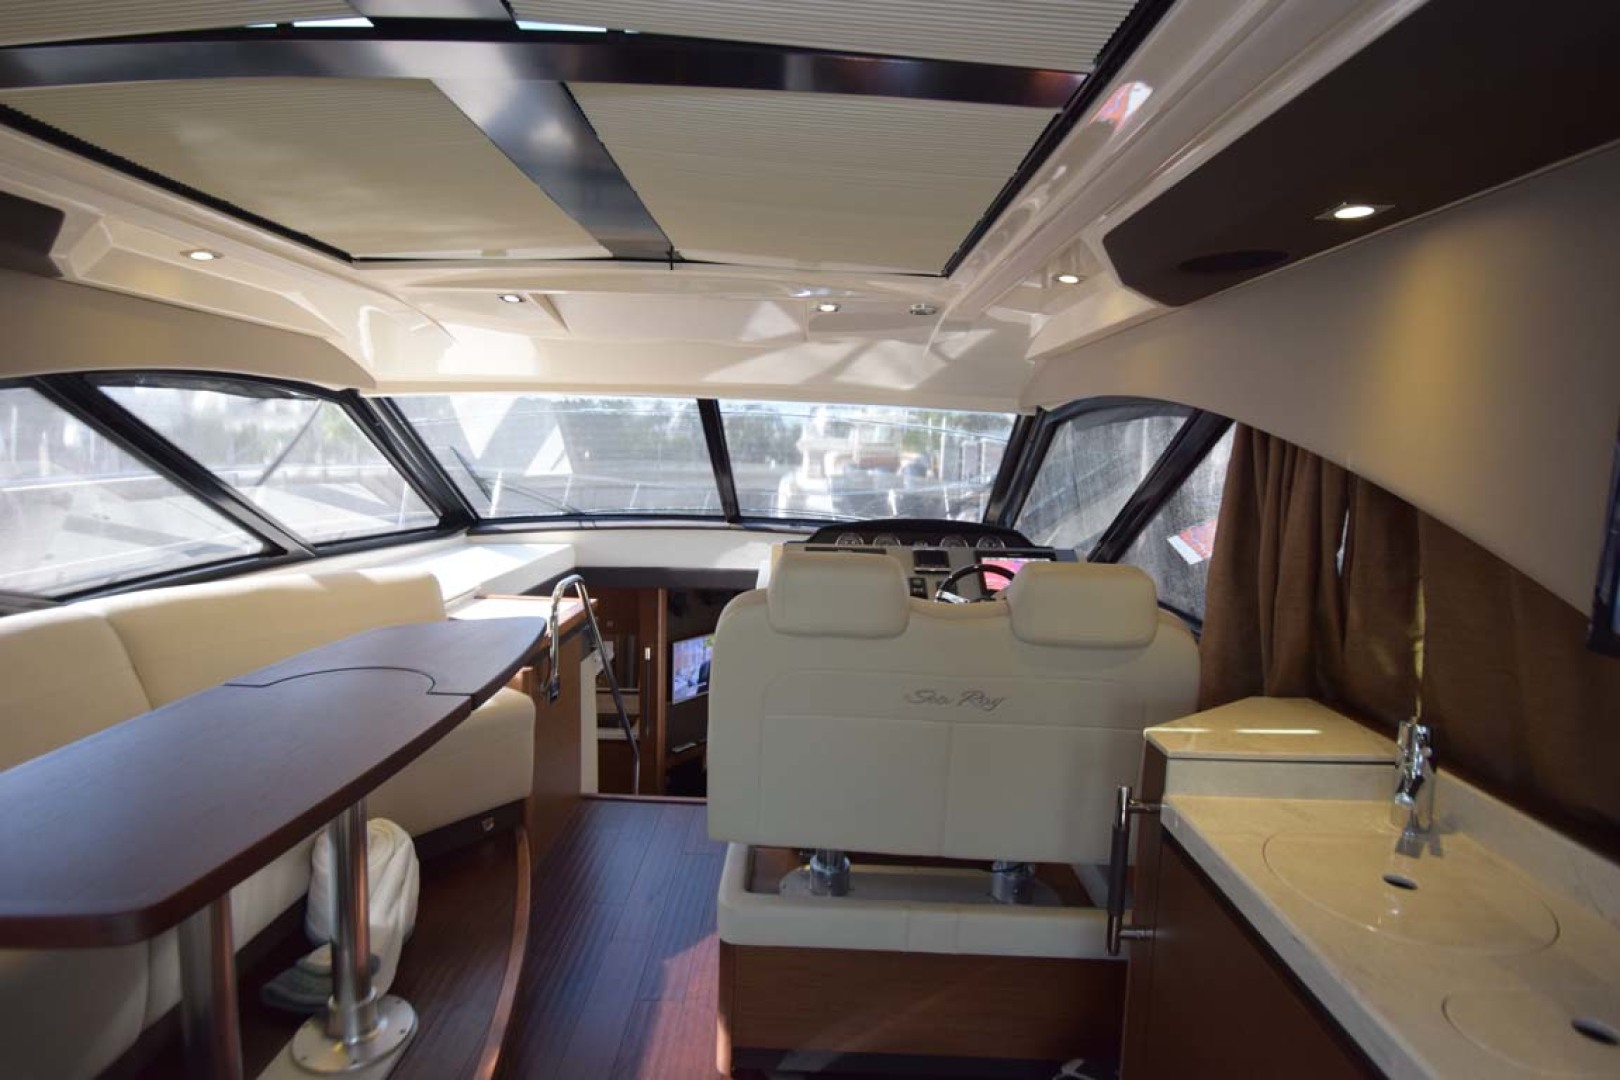 Sea Ray-510 Sundancer 2015 -Ft Lauderdale-Florida-United States-Salon View To Bow With Shades Closed-1189924 | Thumbnail